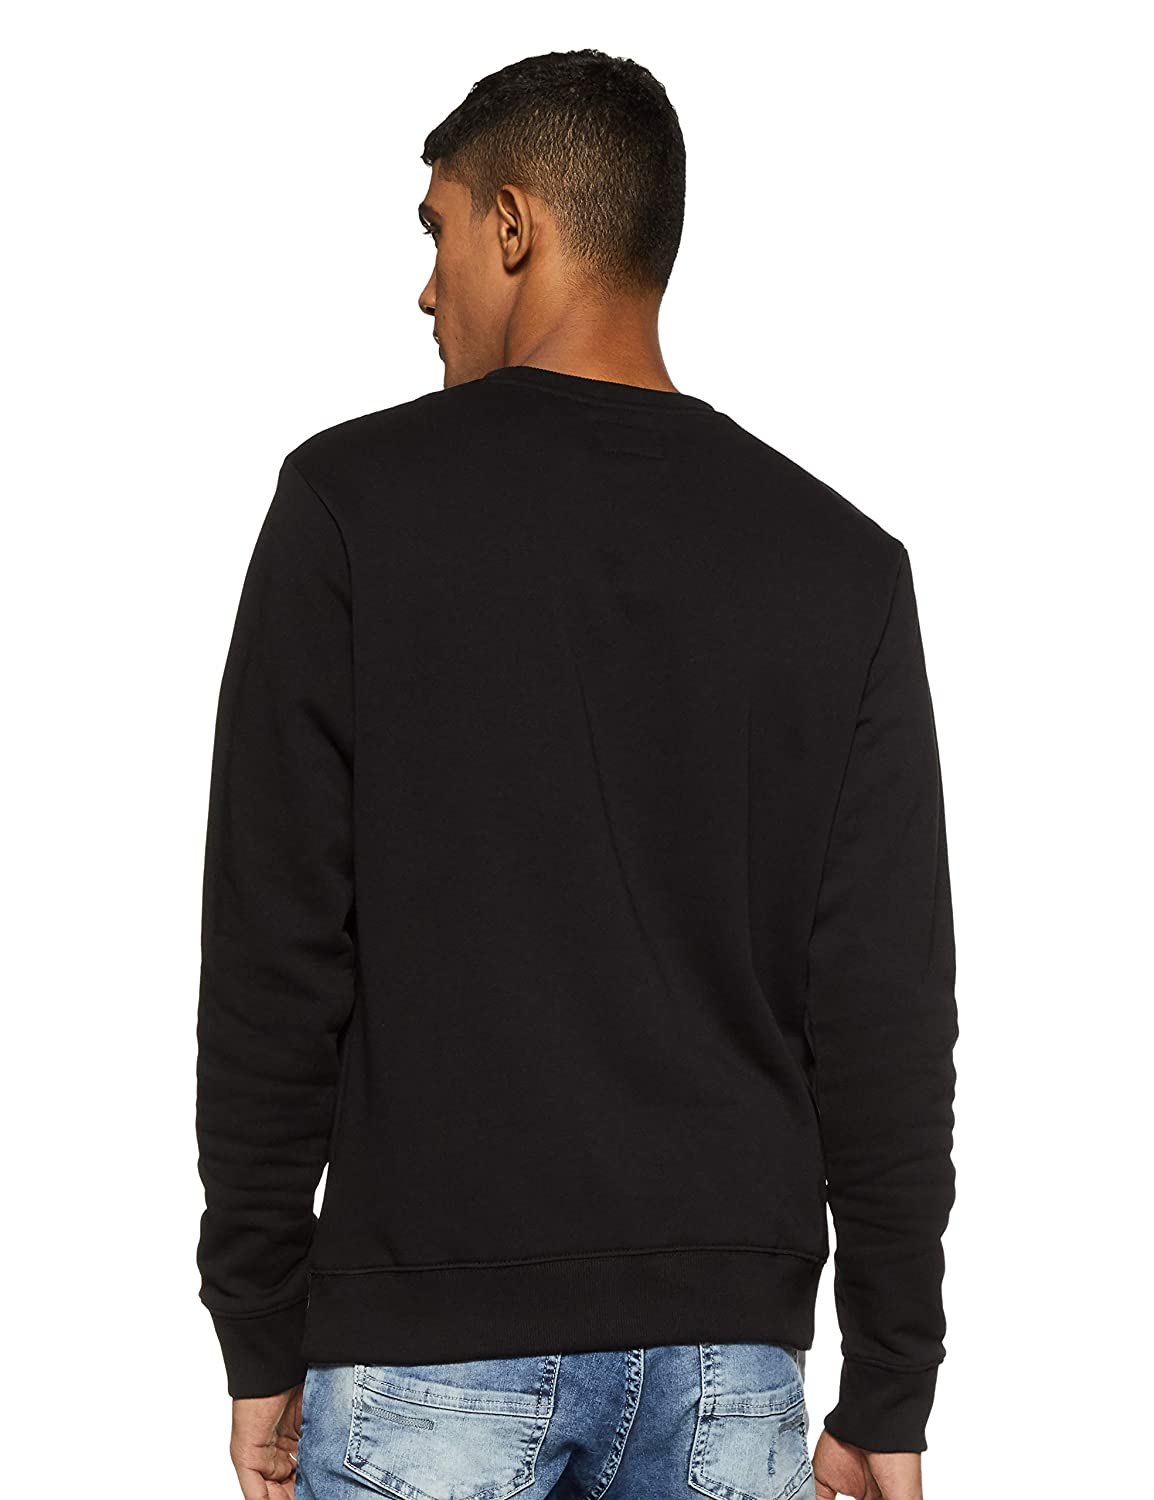 Buy Wrangler Clothes Online and Save Upto 50% For Men Sweatshirts